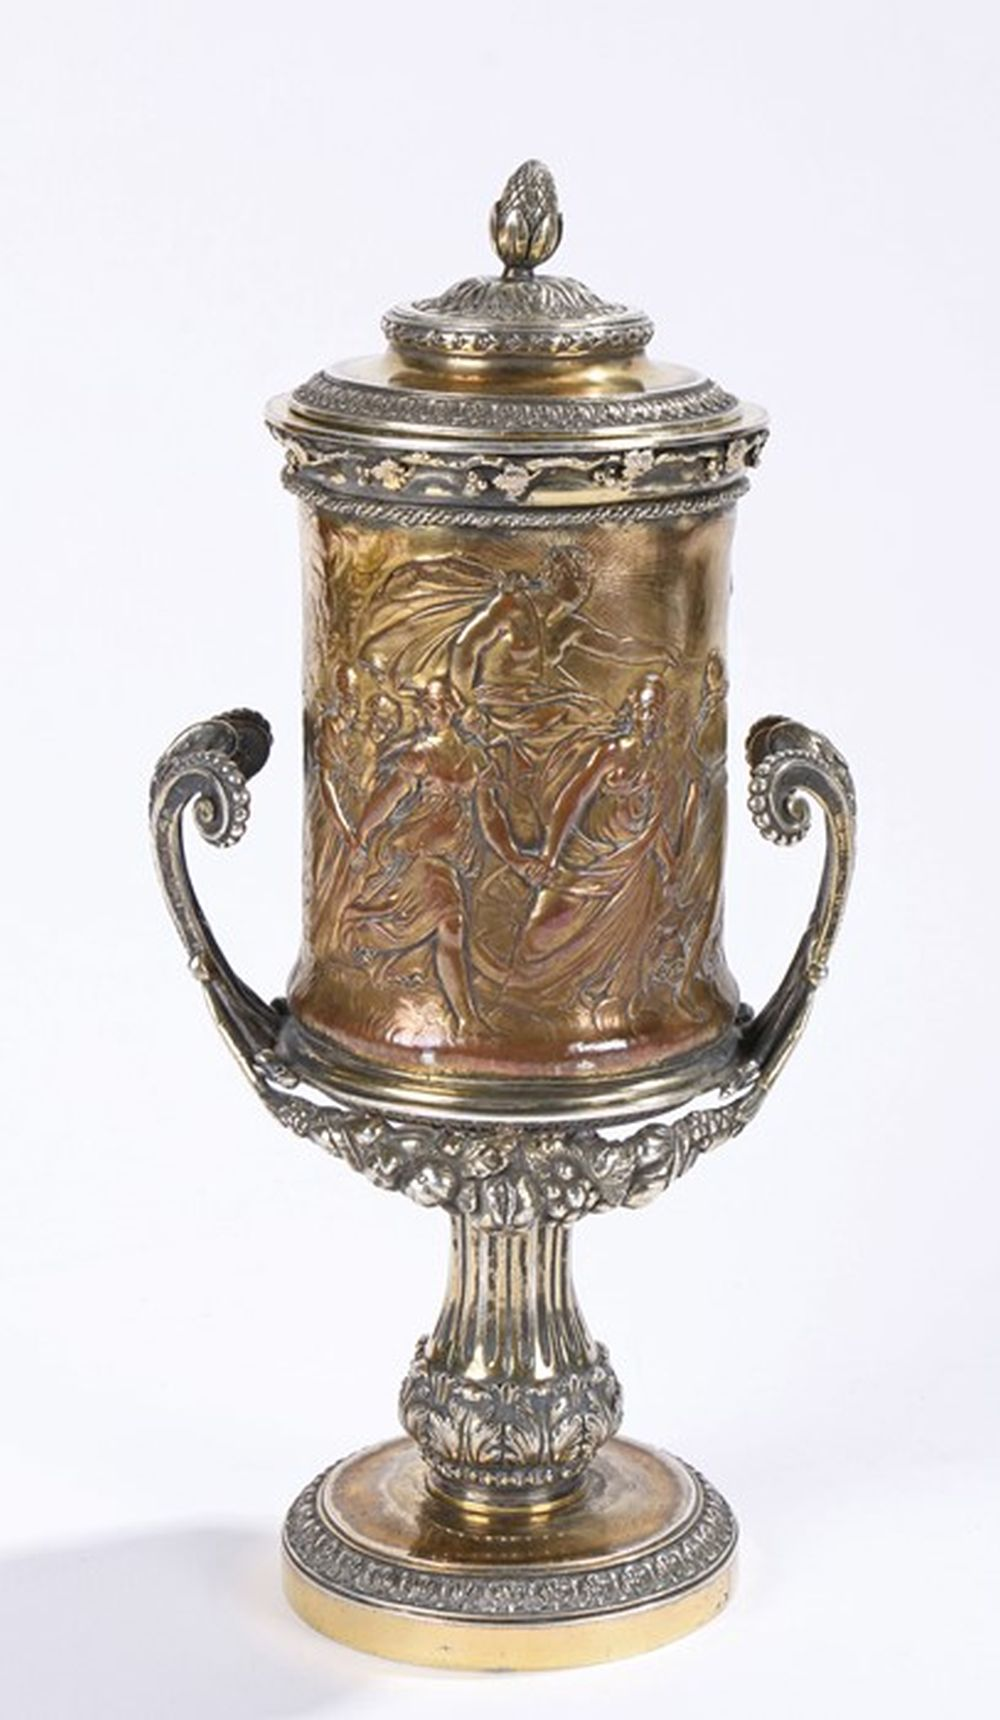 19th Century gilt white metal cup and cover, the lid with pineapple finial and acanthus leaf decorat